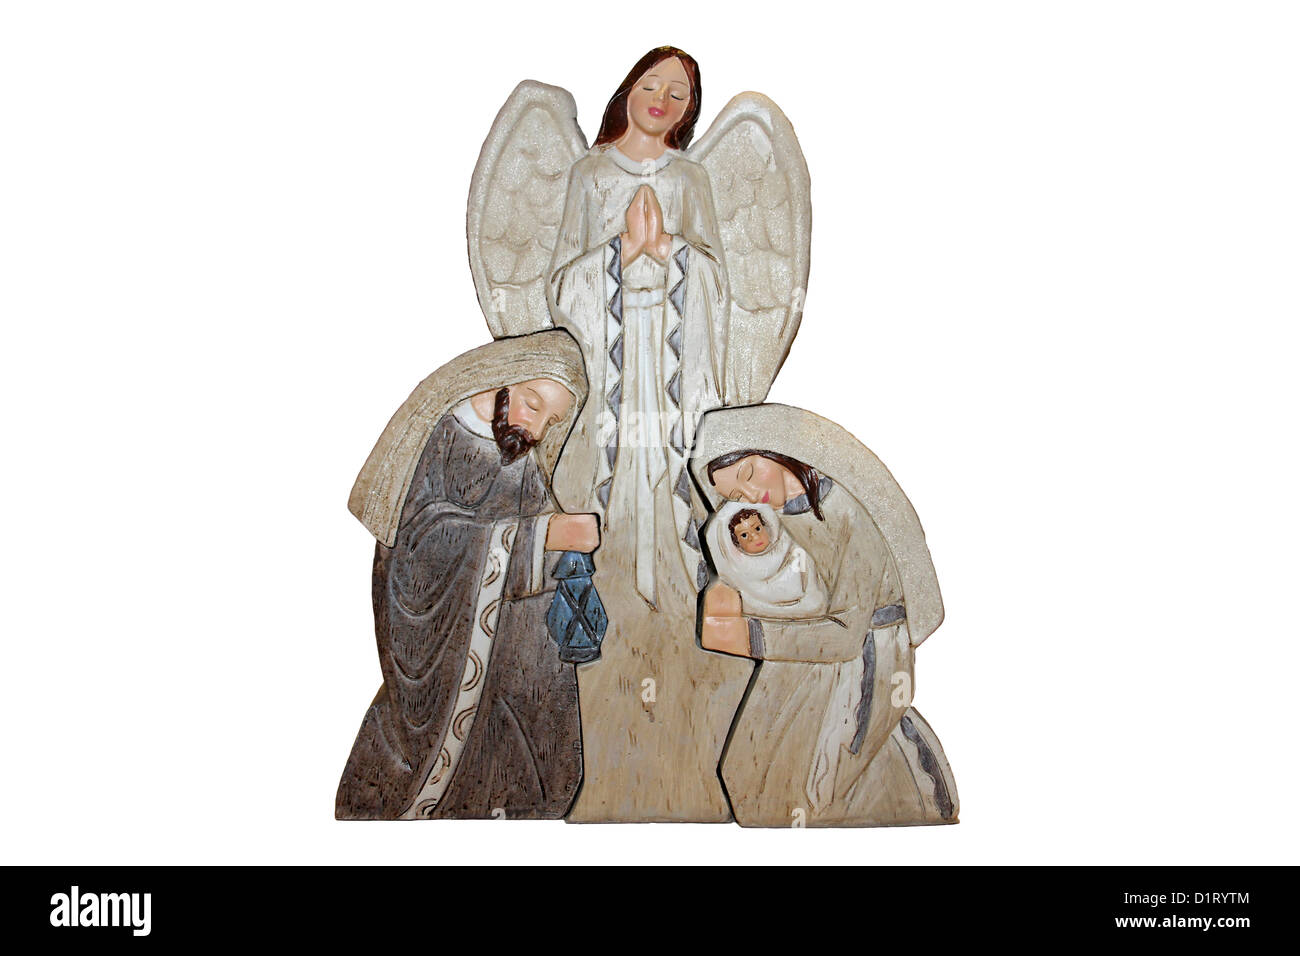 Christmas Decoration showing Mary, Joseph, Baby Jesus and An Angel Stock Photo